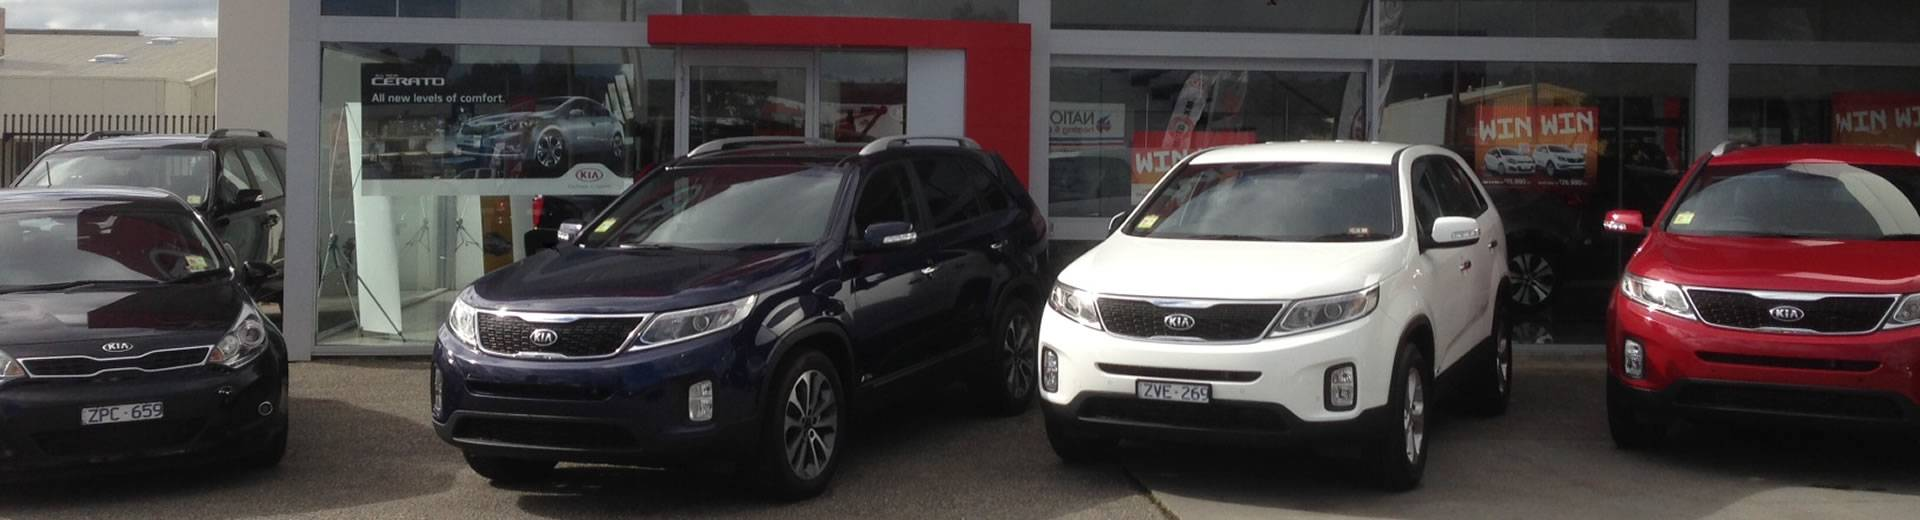 contact us | wodonga, vic - mcrae kia